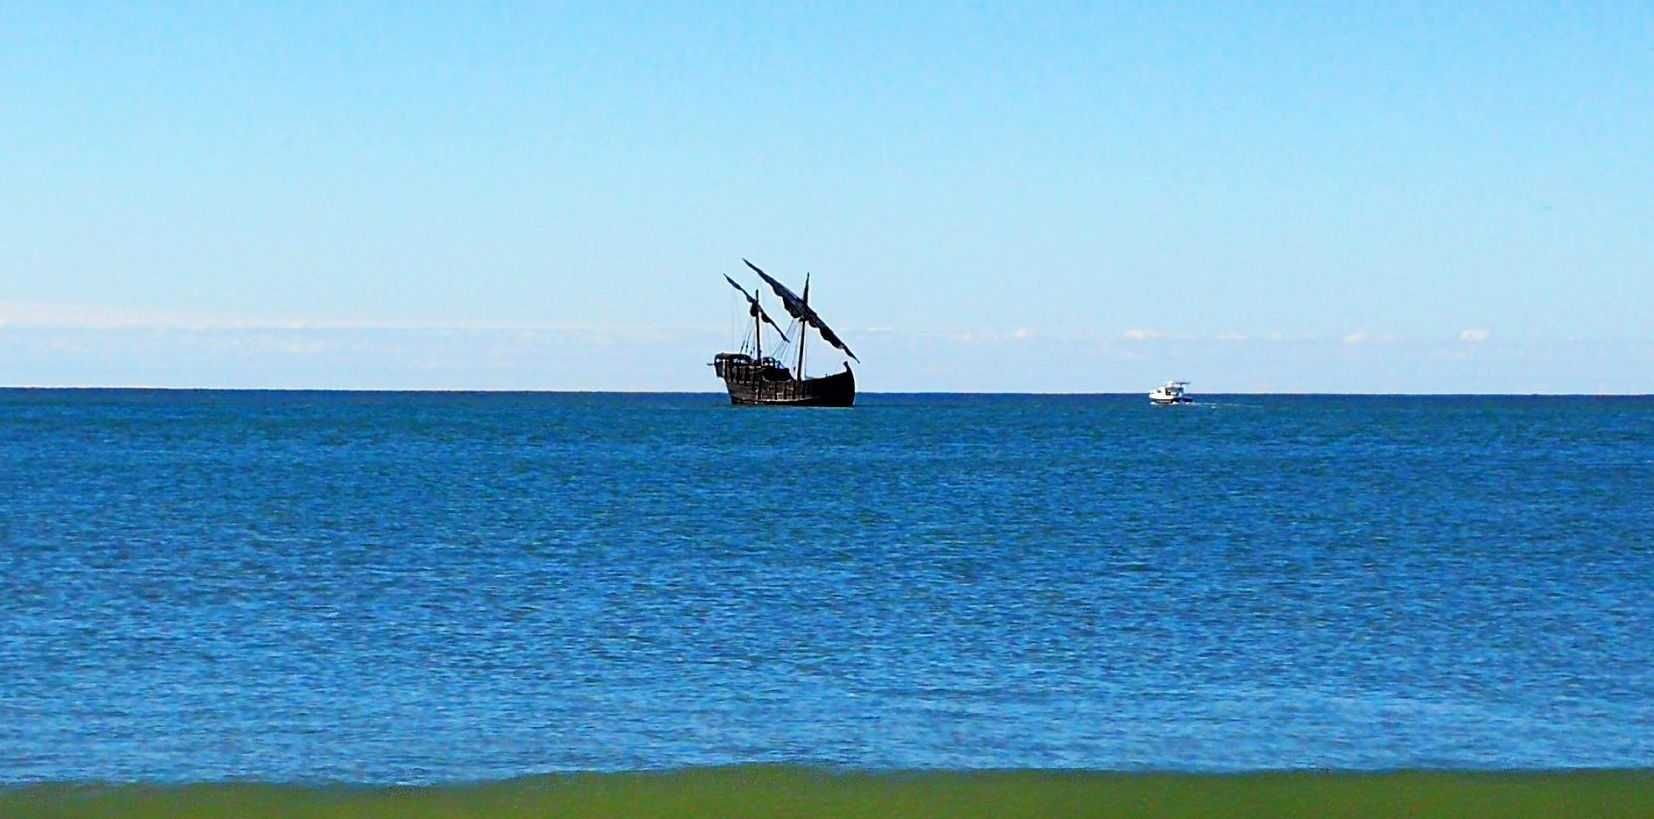 A pirate ship has anchored off Mooloolaba.